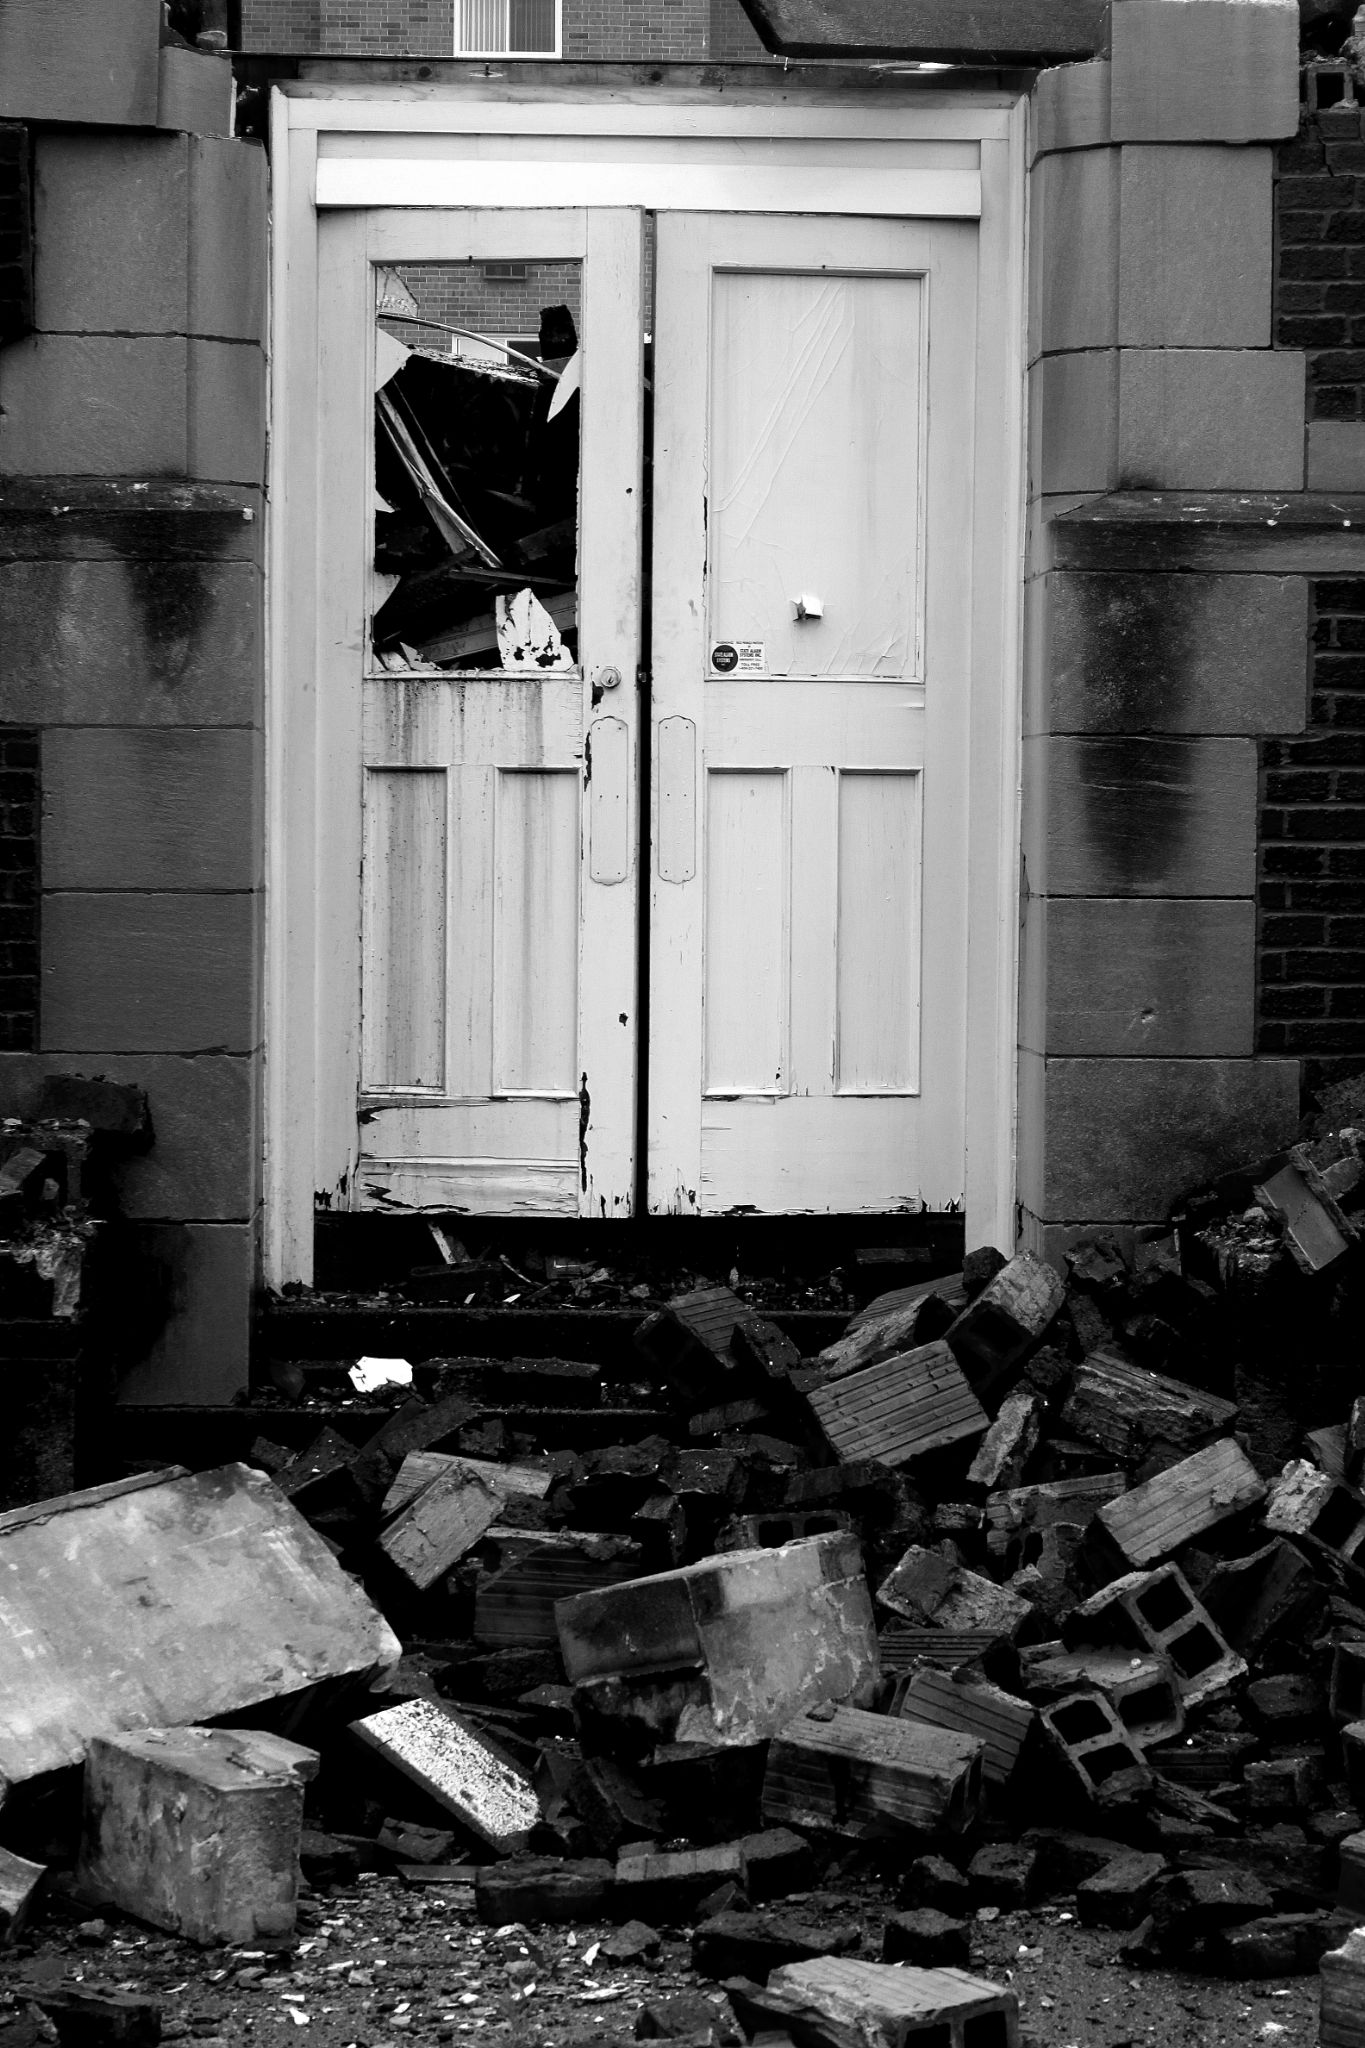 When one door closes, another opens by Apex Photography